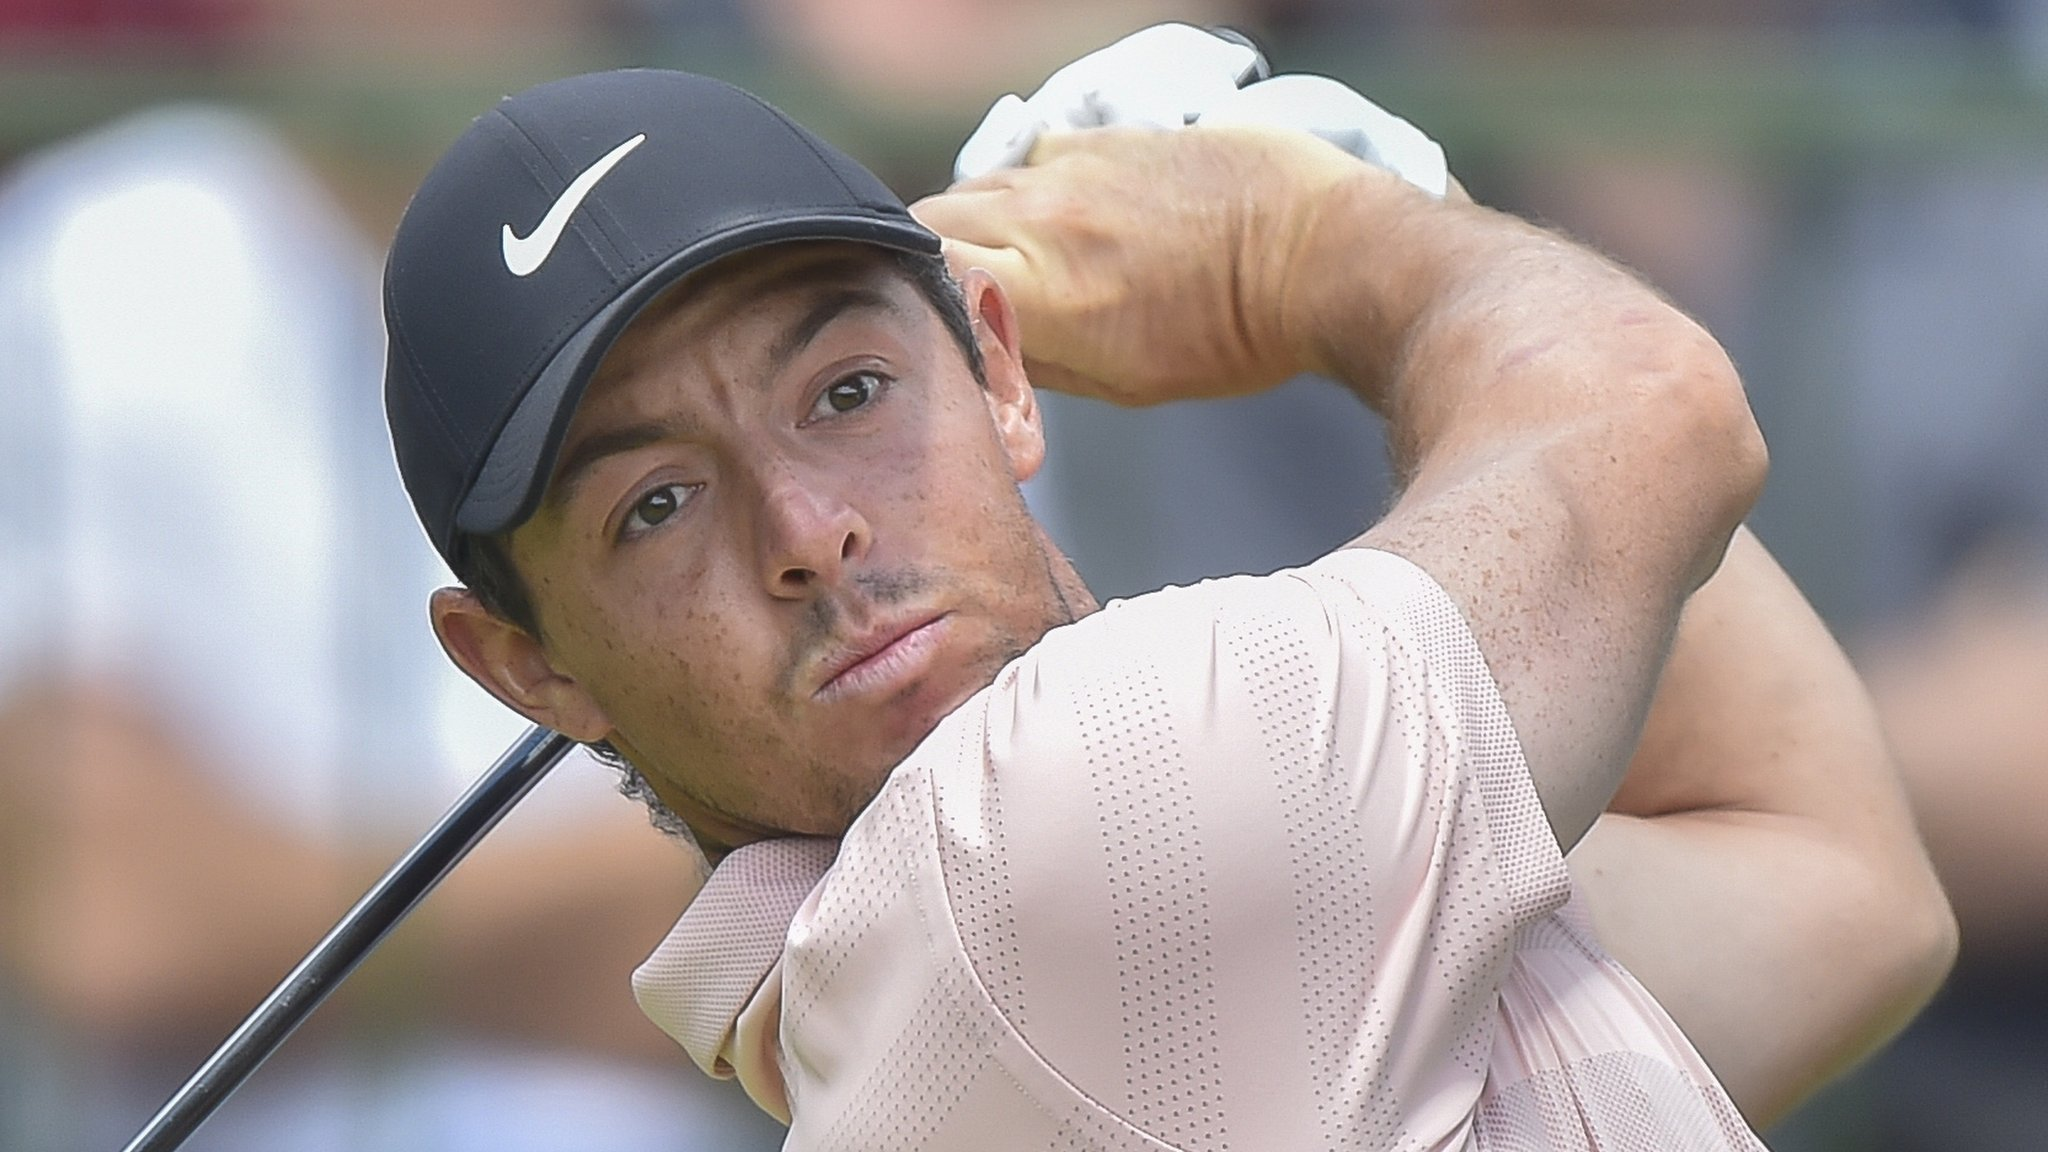 McIlroy could play only two European Tour events in 2019